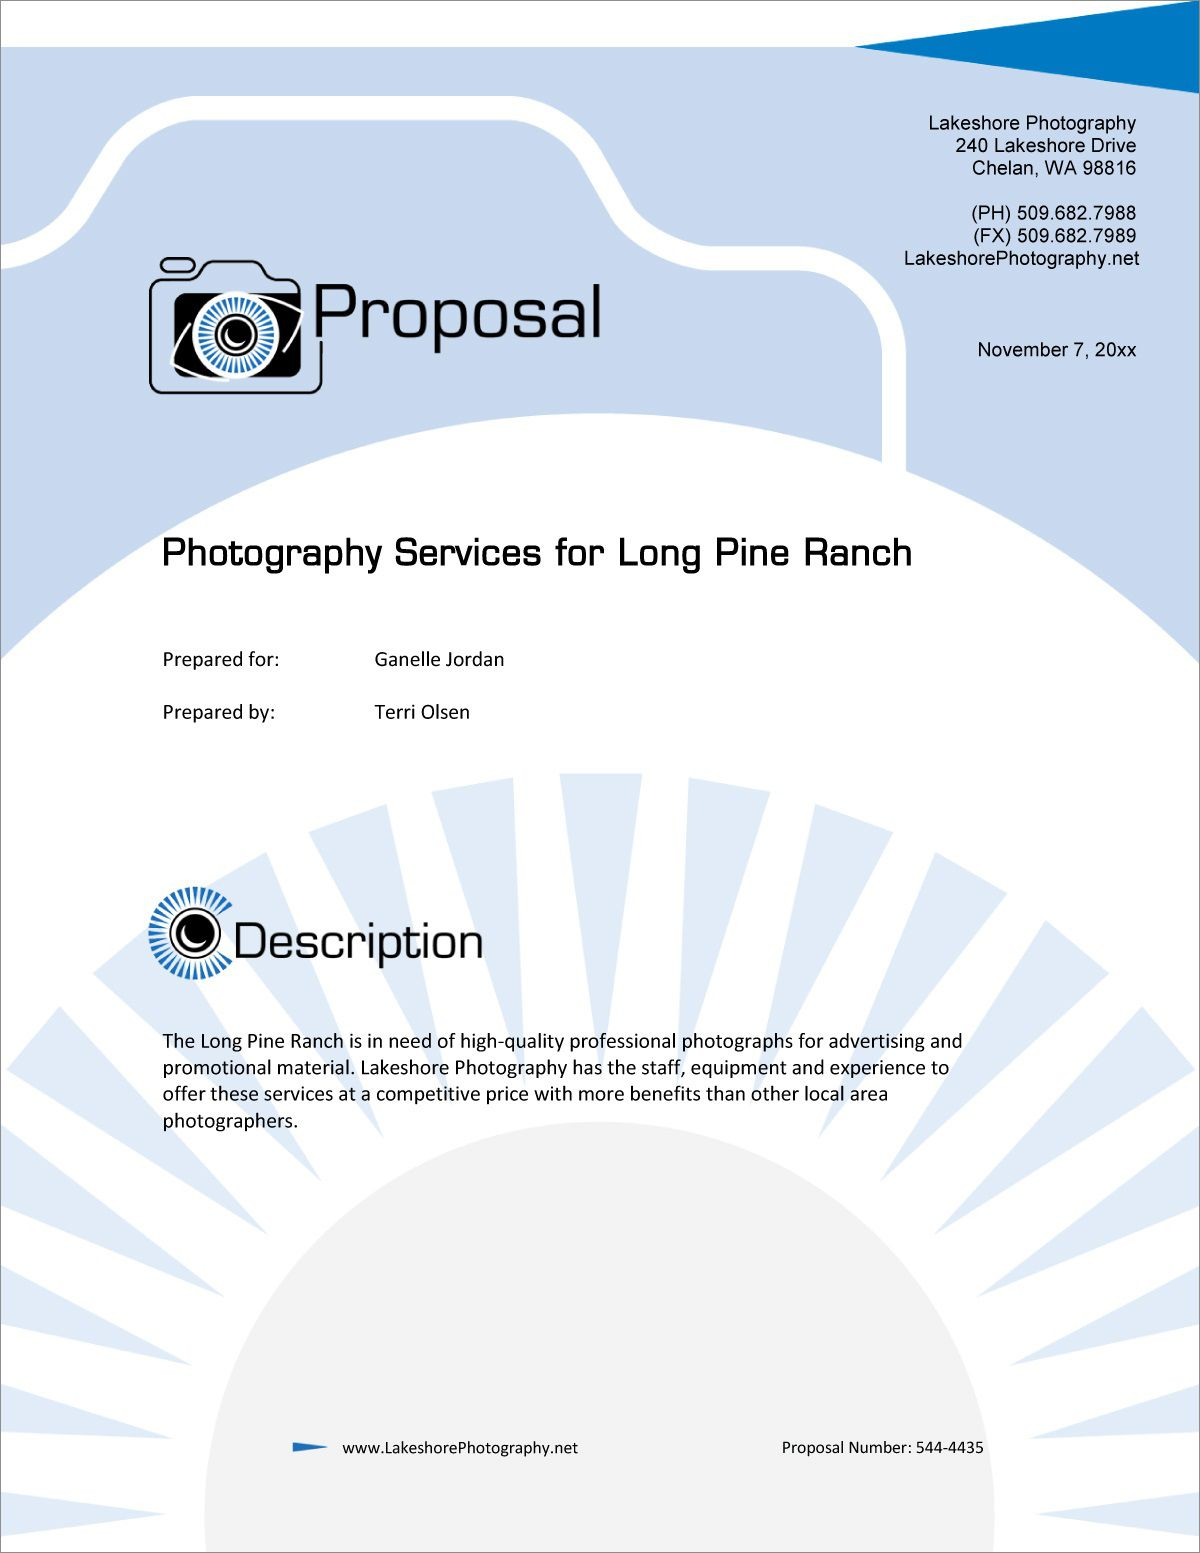 002 Exceptional Wedding Photography Busines Plan Example Image  Of SampleFull